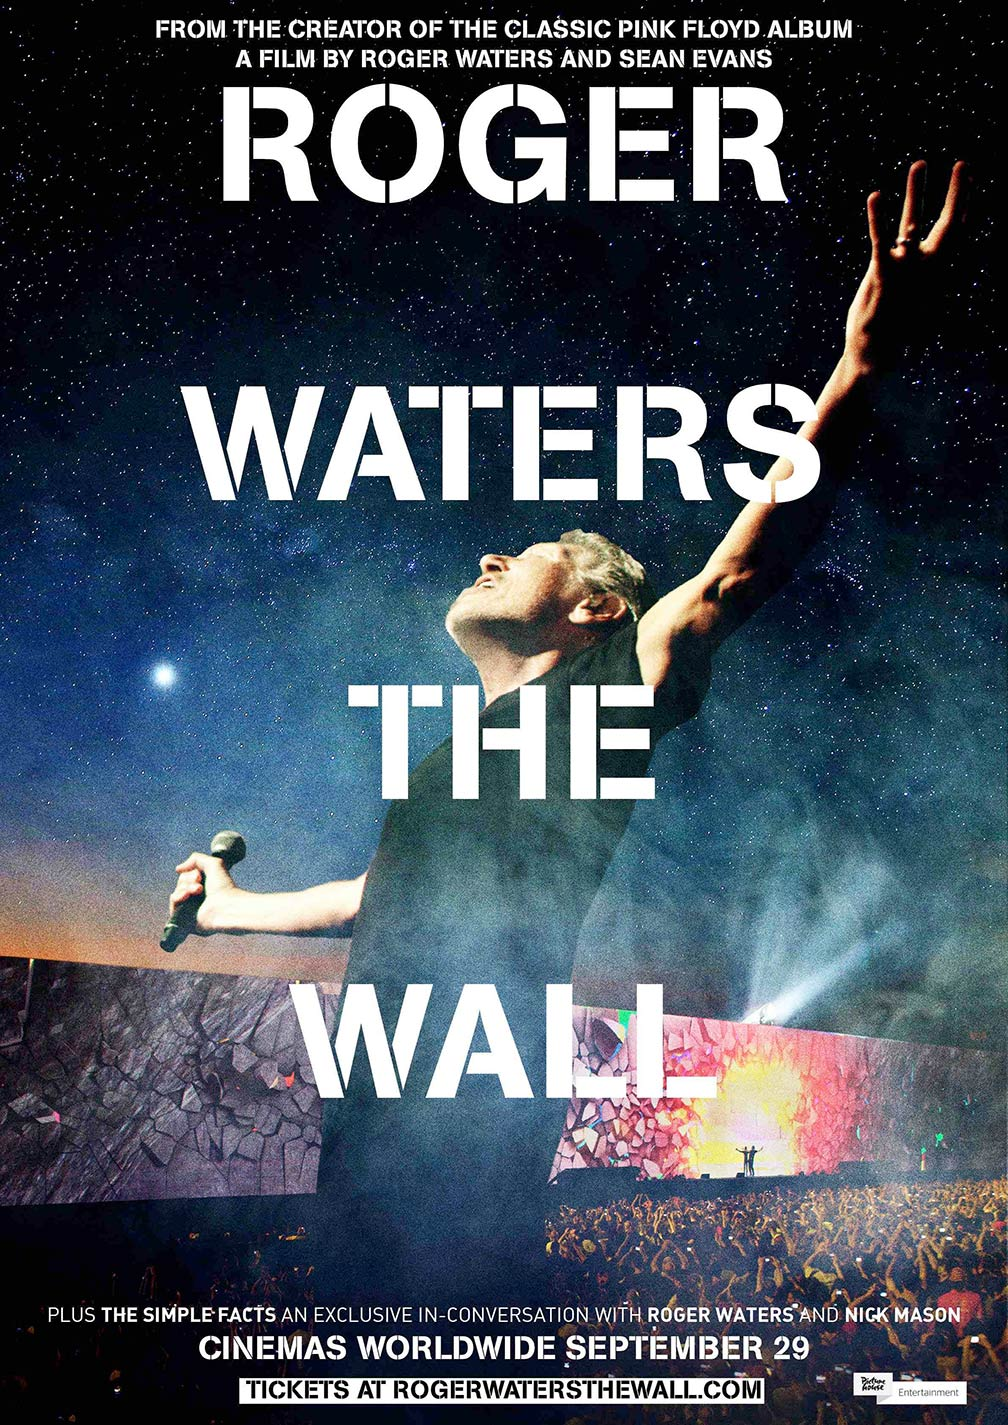 Roger Waters The Wall Poster #2